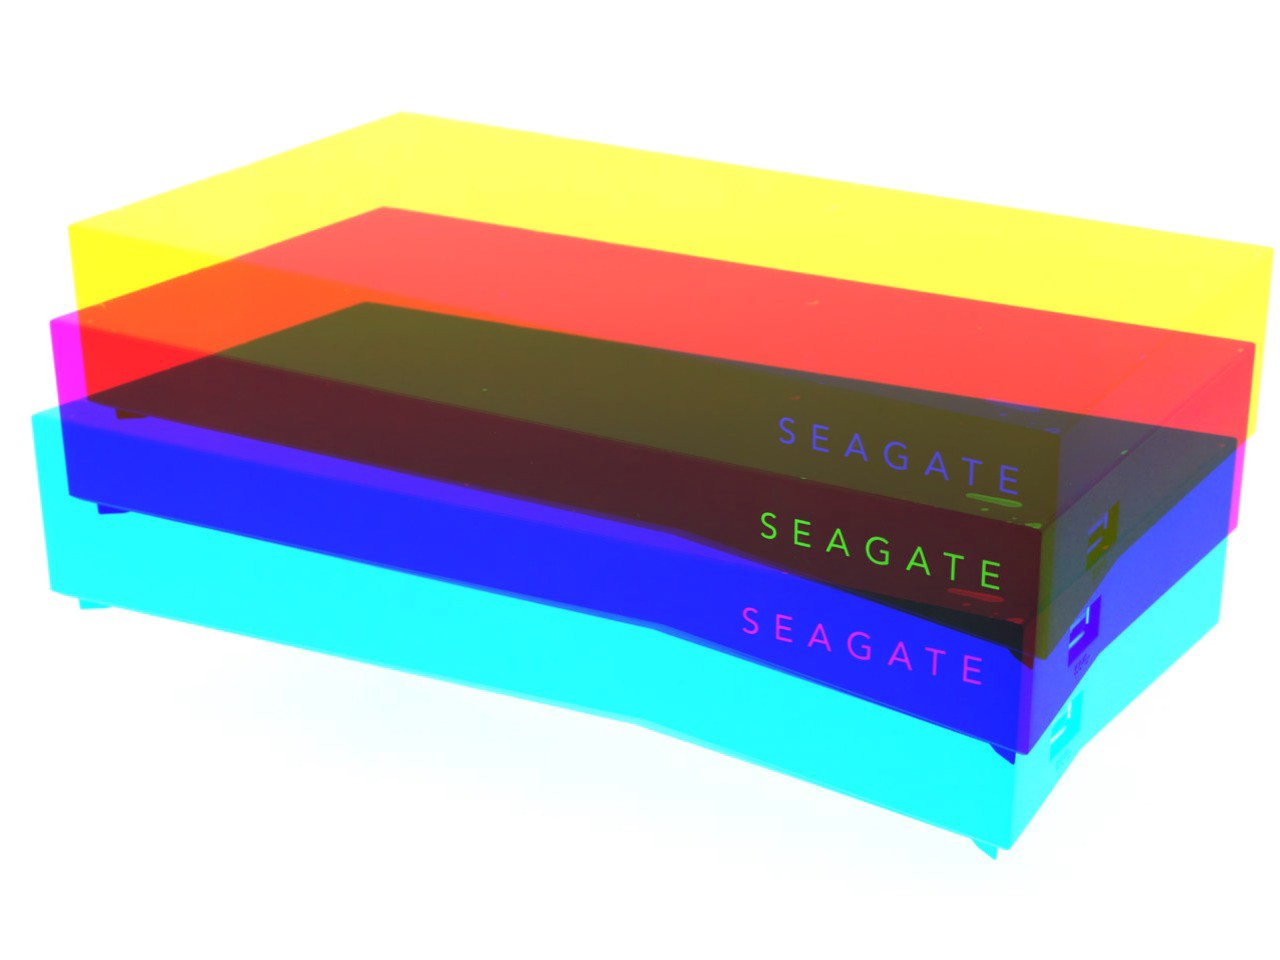 Invading Your Personal Cloud — ISE Labs Exploits the Seagate